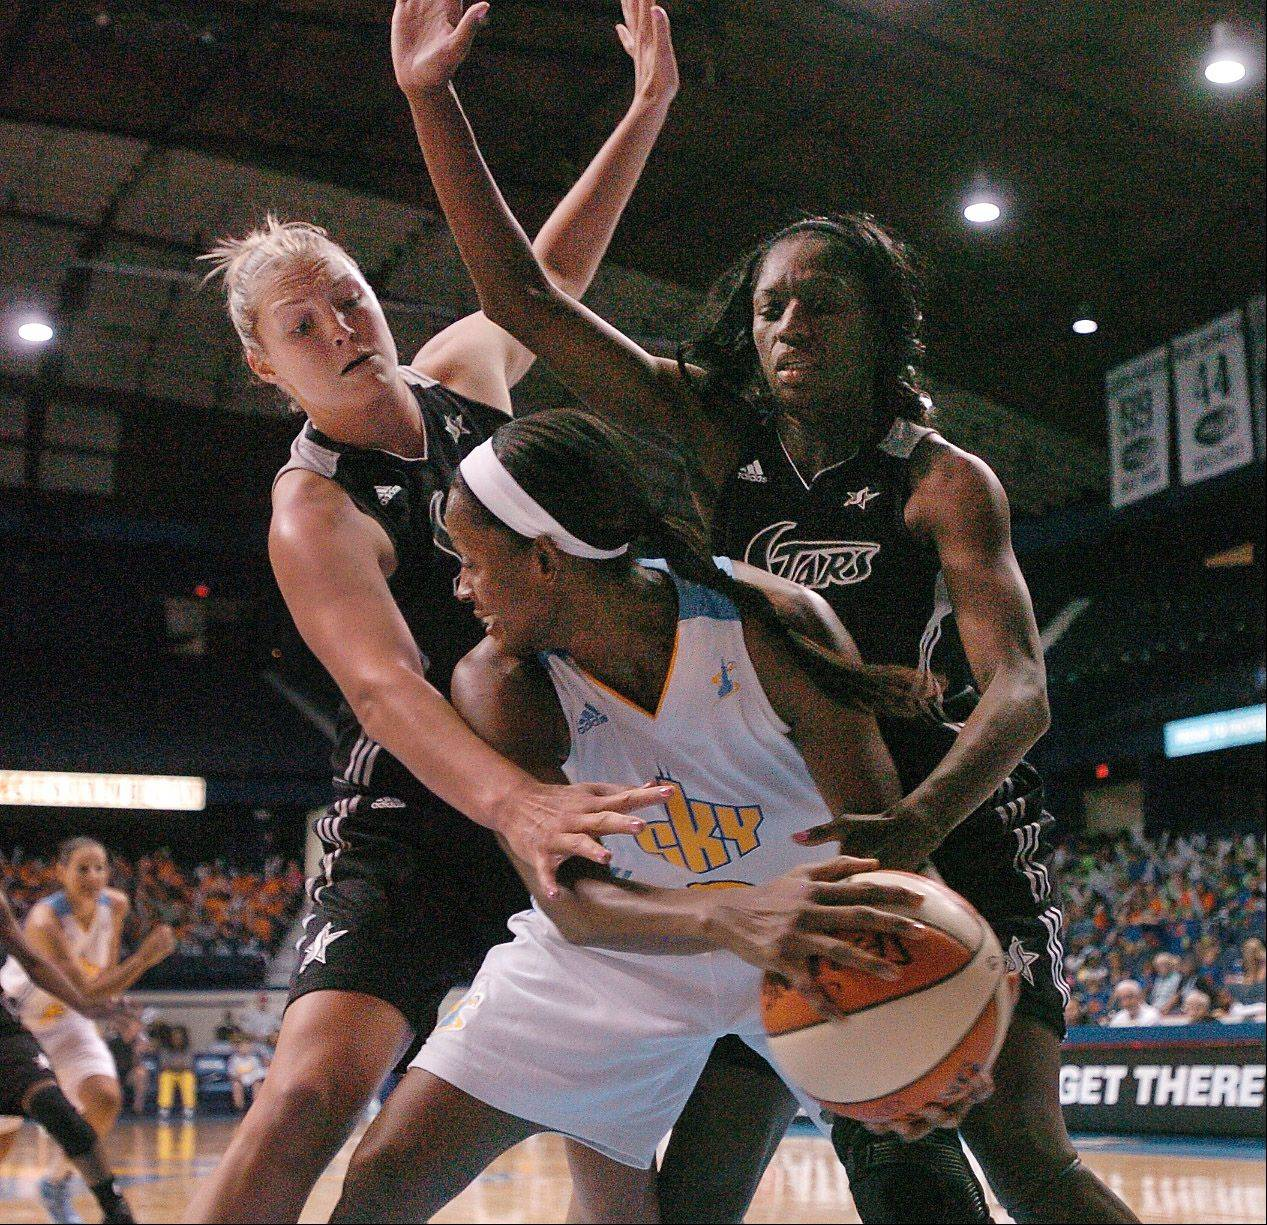 The Chicago Sky's Swin Cash is surrounded by Jane Appel and Shameka Christon of San Antonio, during their game at the Allstate Arena on Wednesday.